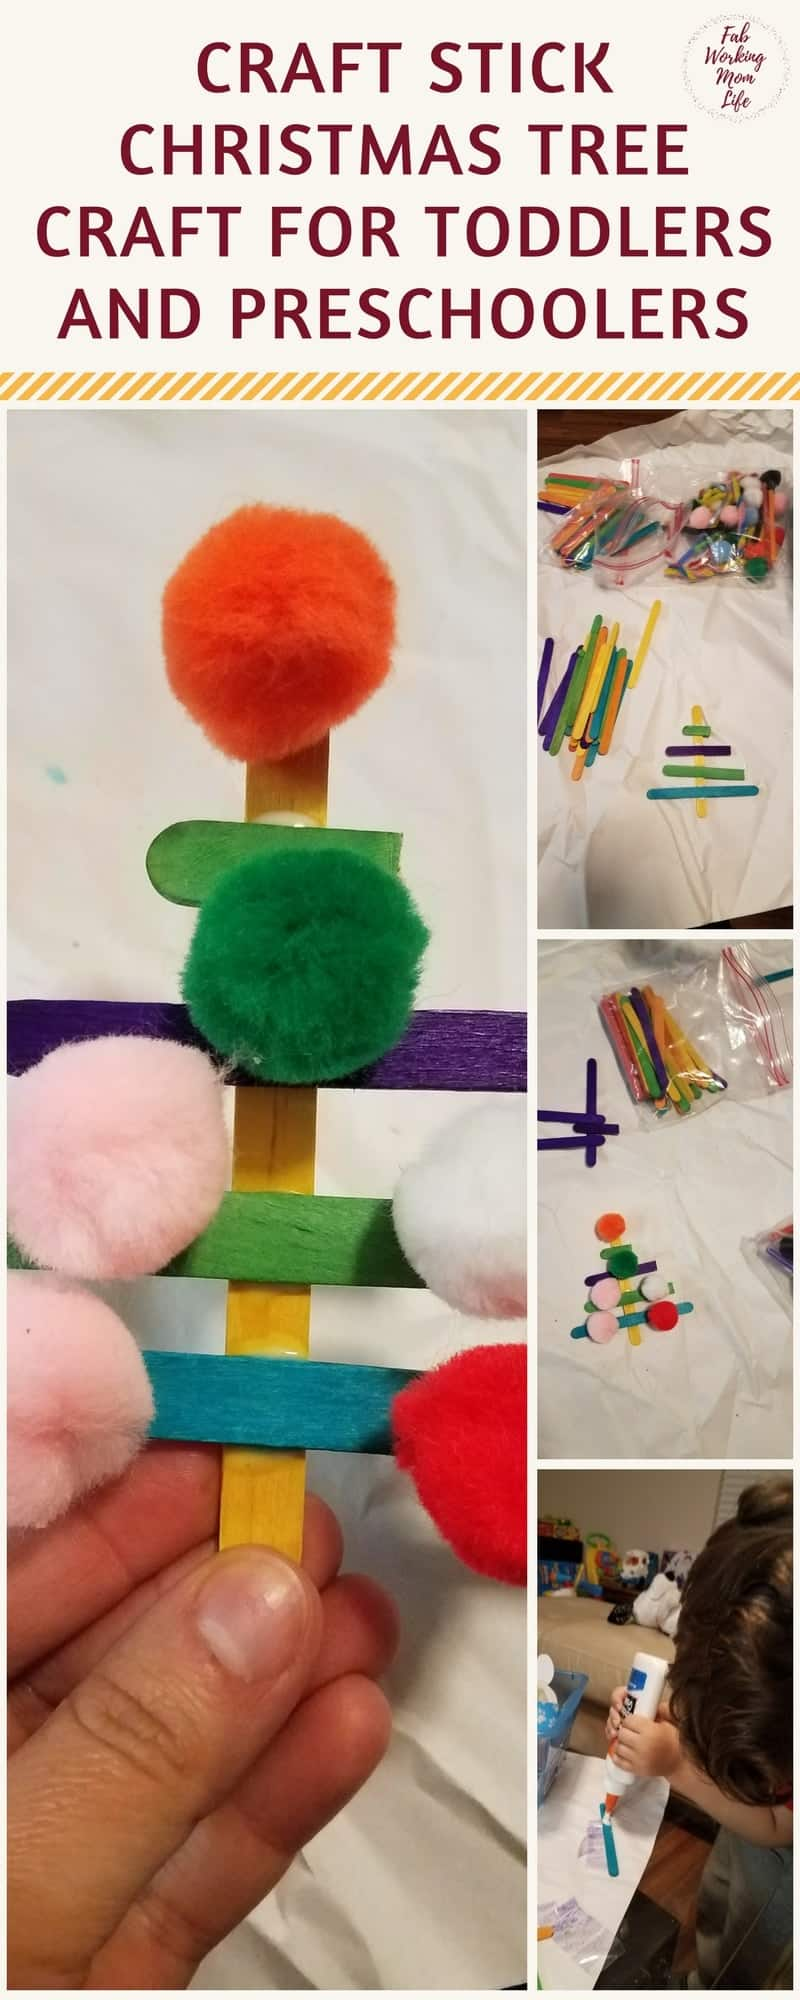 Craft Stick Christmas Tree and other Simple Winter Crafts your Toddlers and Preschoolers will Love to do